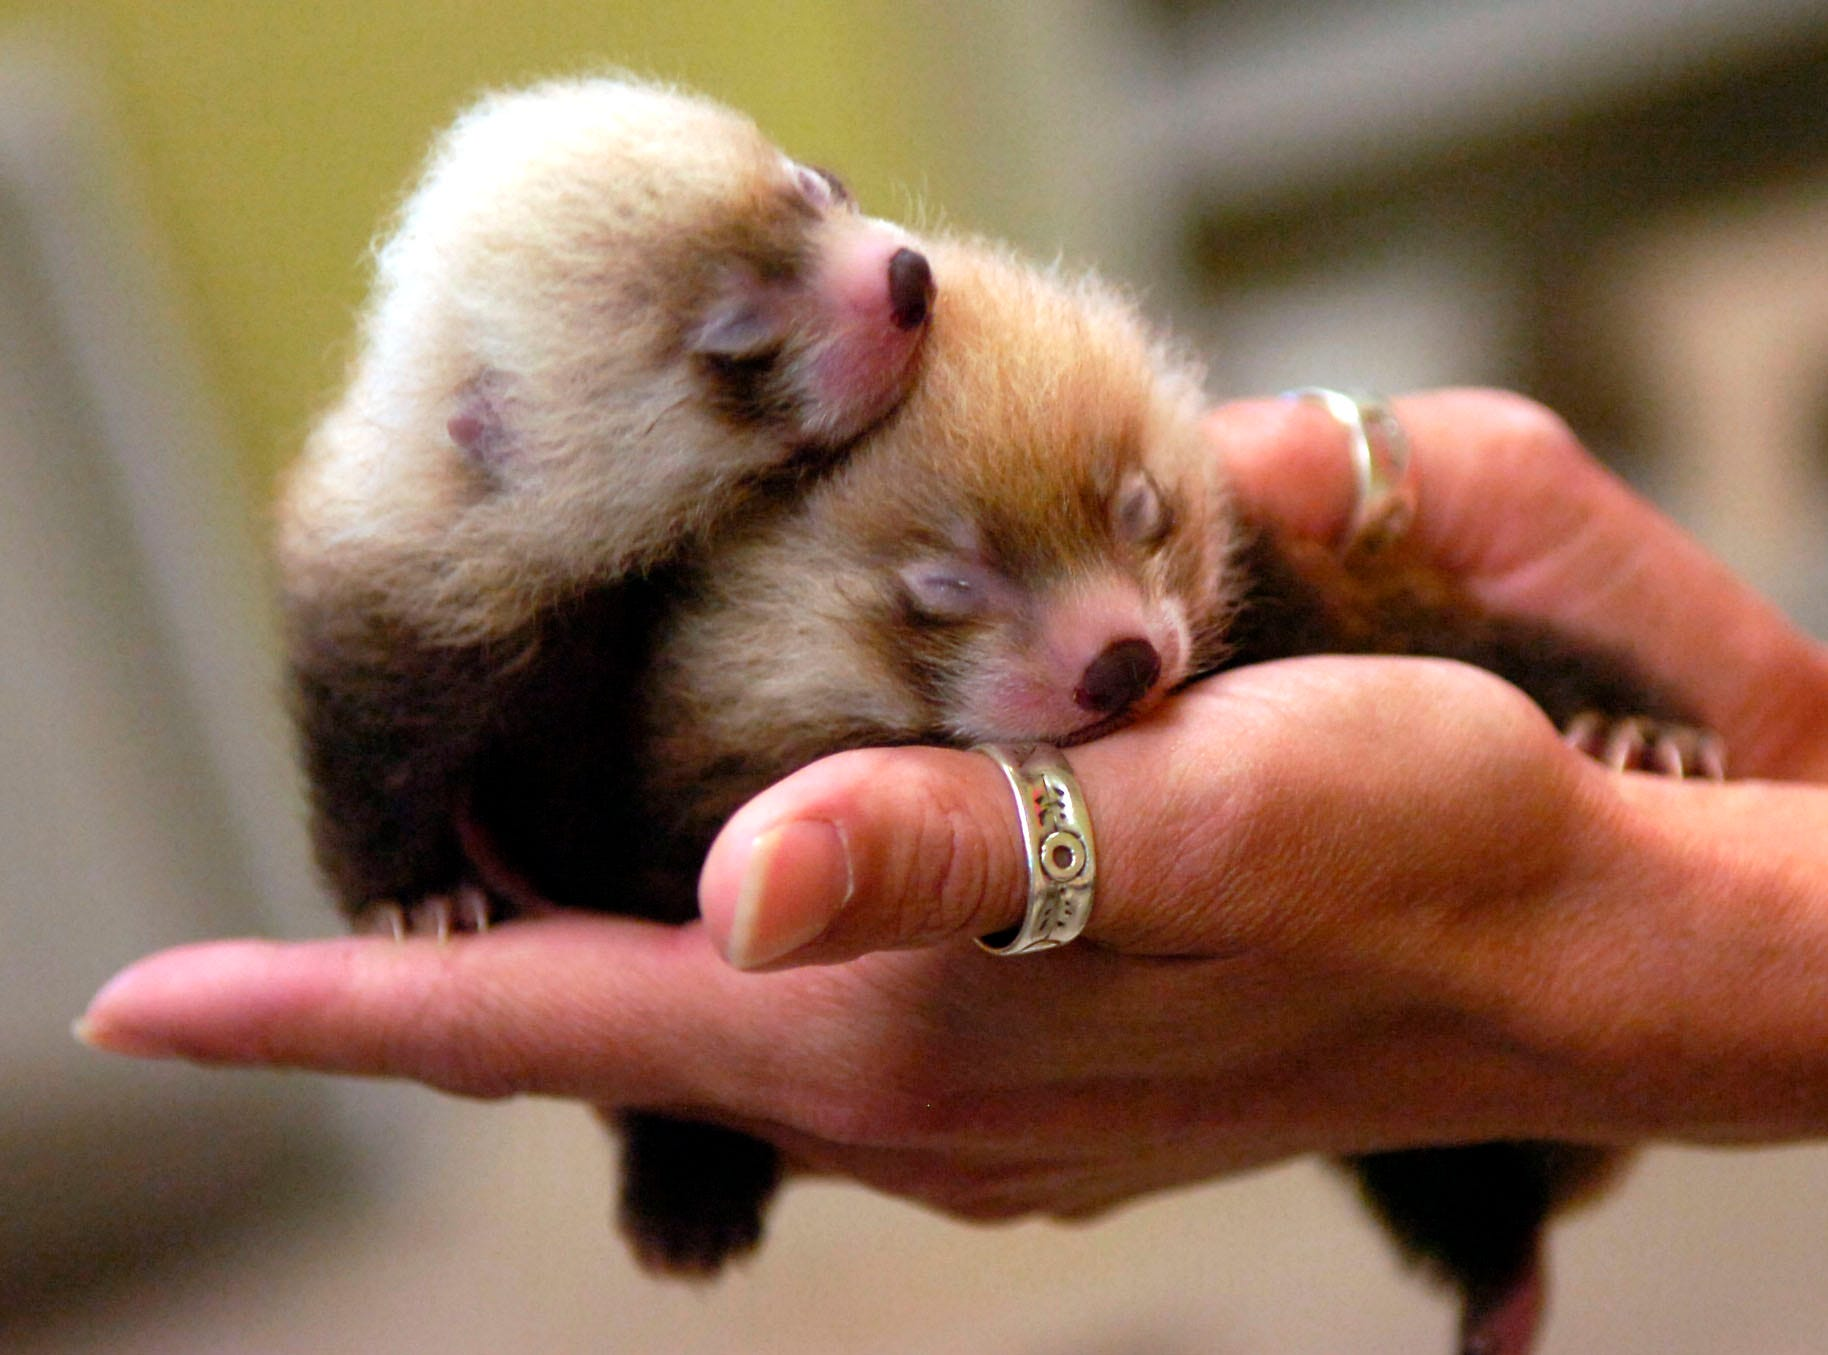 Sarah Glass holds the new red panda cubs, one male and one female, at the Knoxville Zoo on Friday. The cubs are a week old and were the ninety-third and ninety-fourth red panda cubs born at the Zoo.